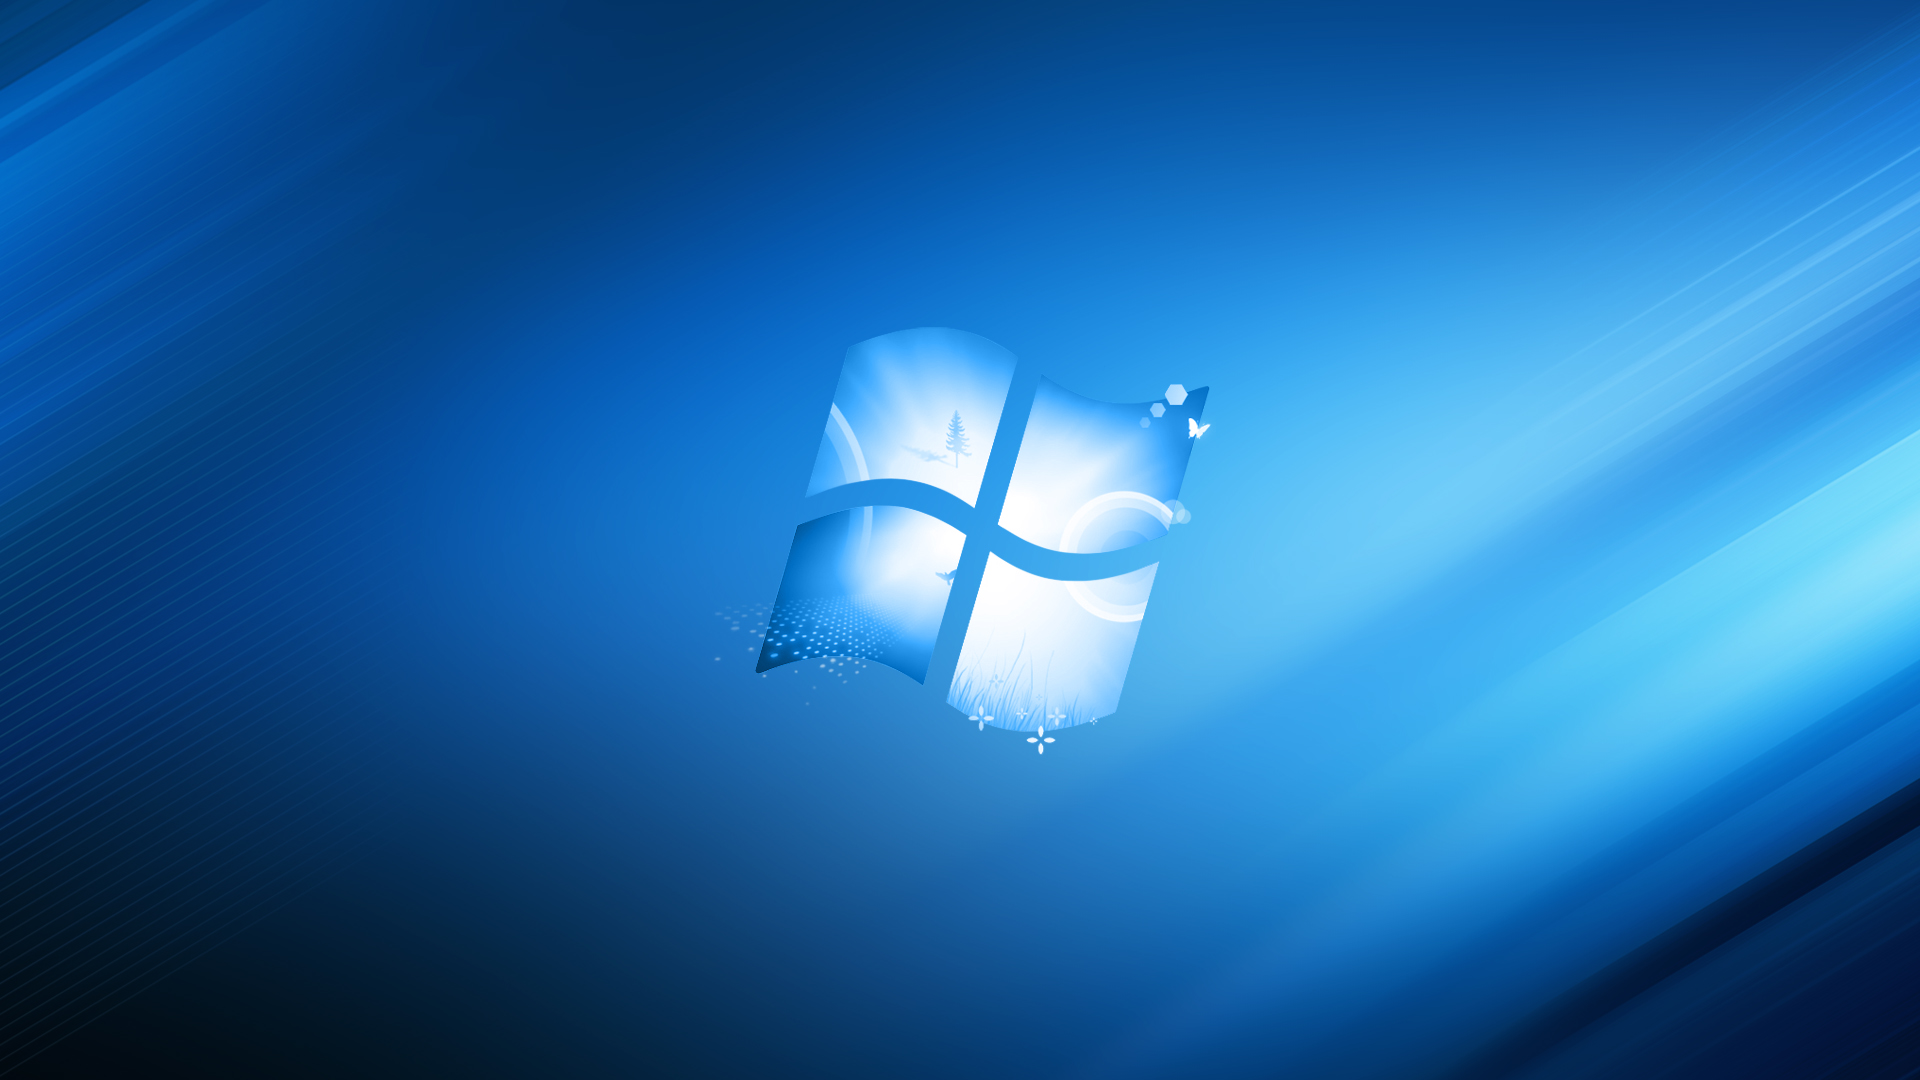 wallpaper para windows: